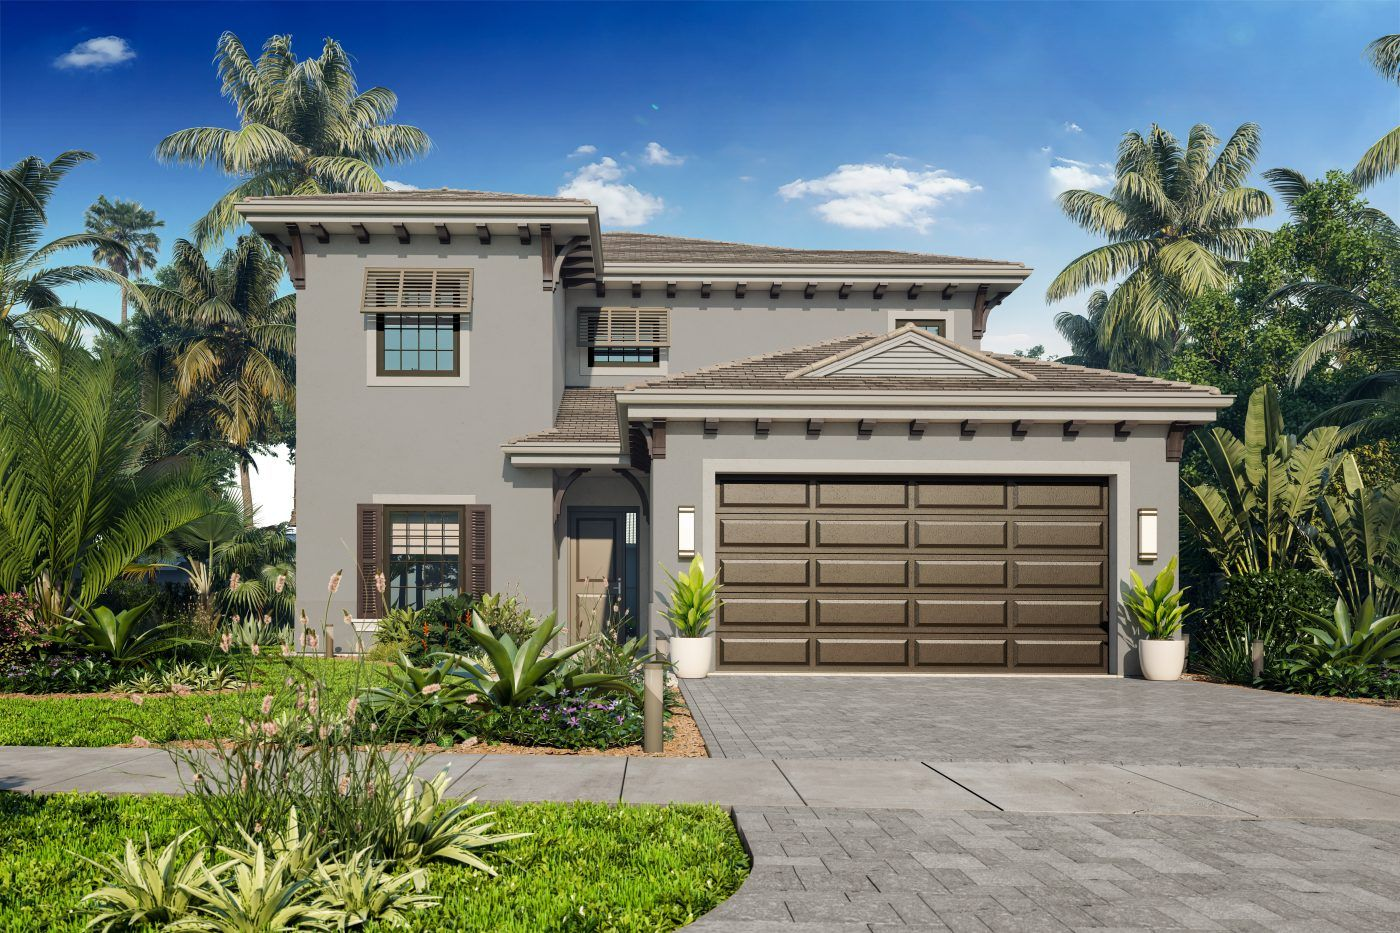 Single Family for Sale at Residences At Banyan Cay - Grenada 3089 Gin Berry Way West Palm Beach, Florida 33401 United States